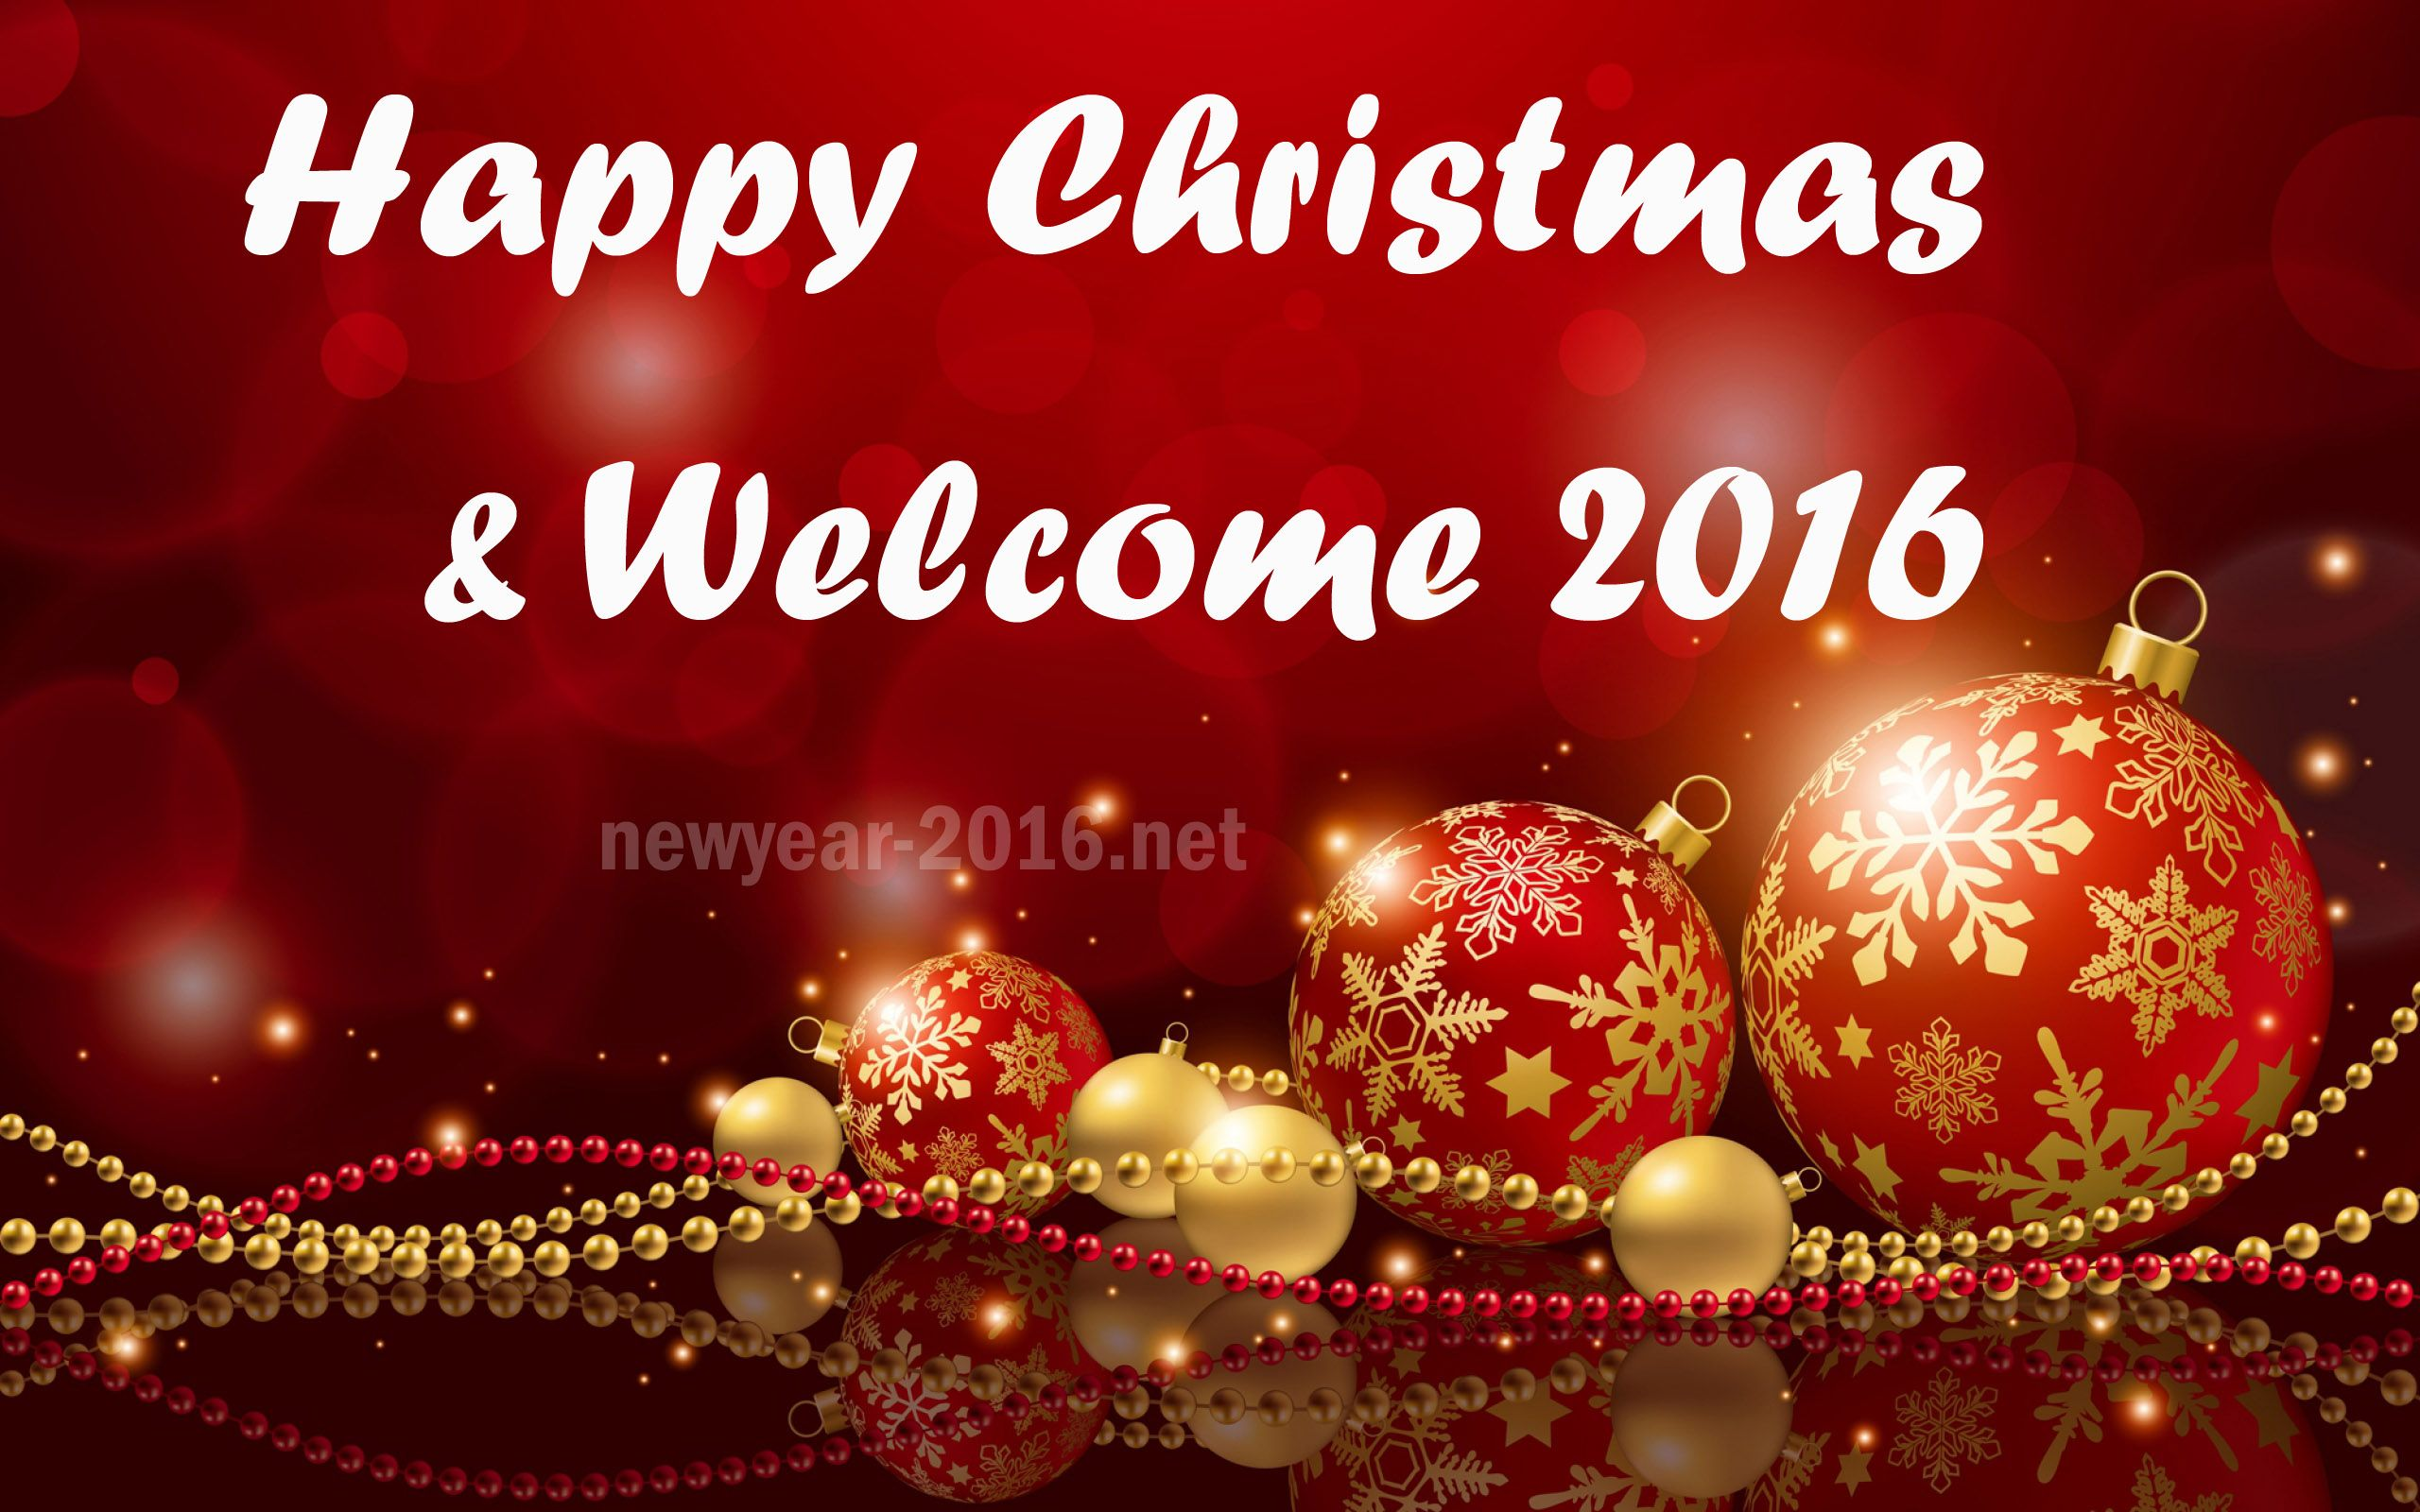 Wallpaper download new year 2016 - Christmas New Year 2016 Hd Wallpaper Download 3d Images Happy